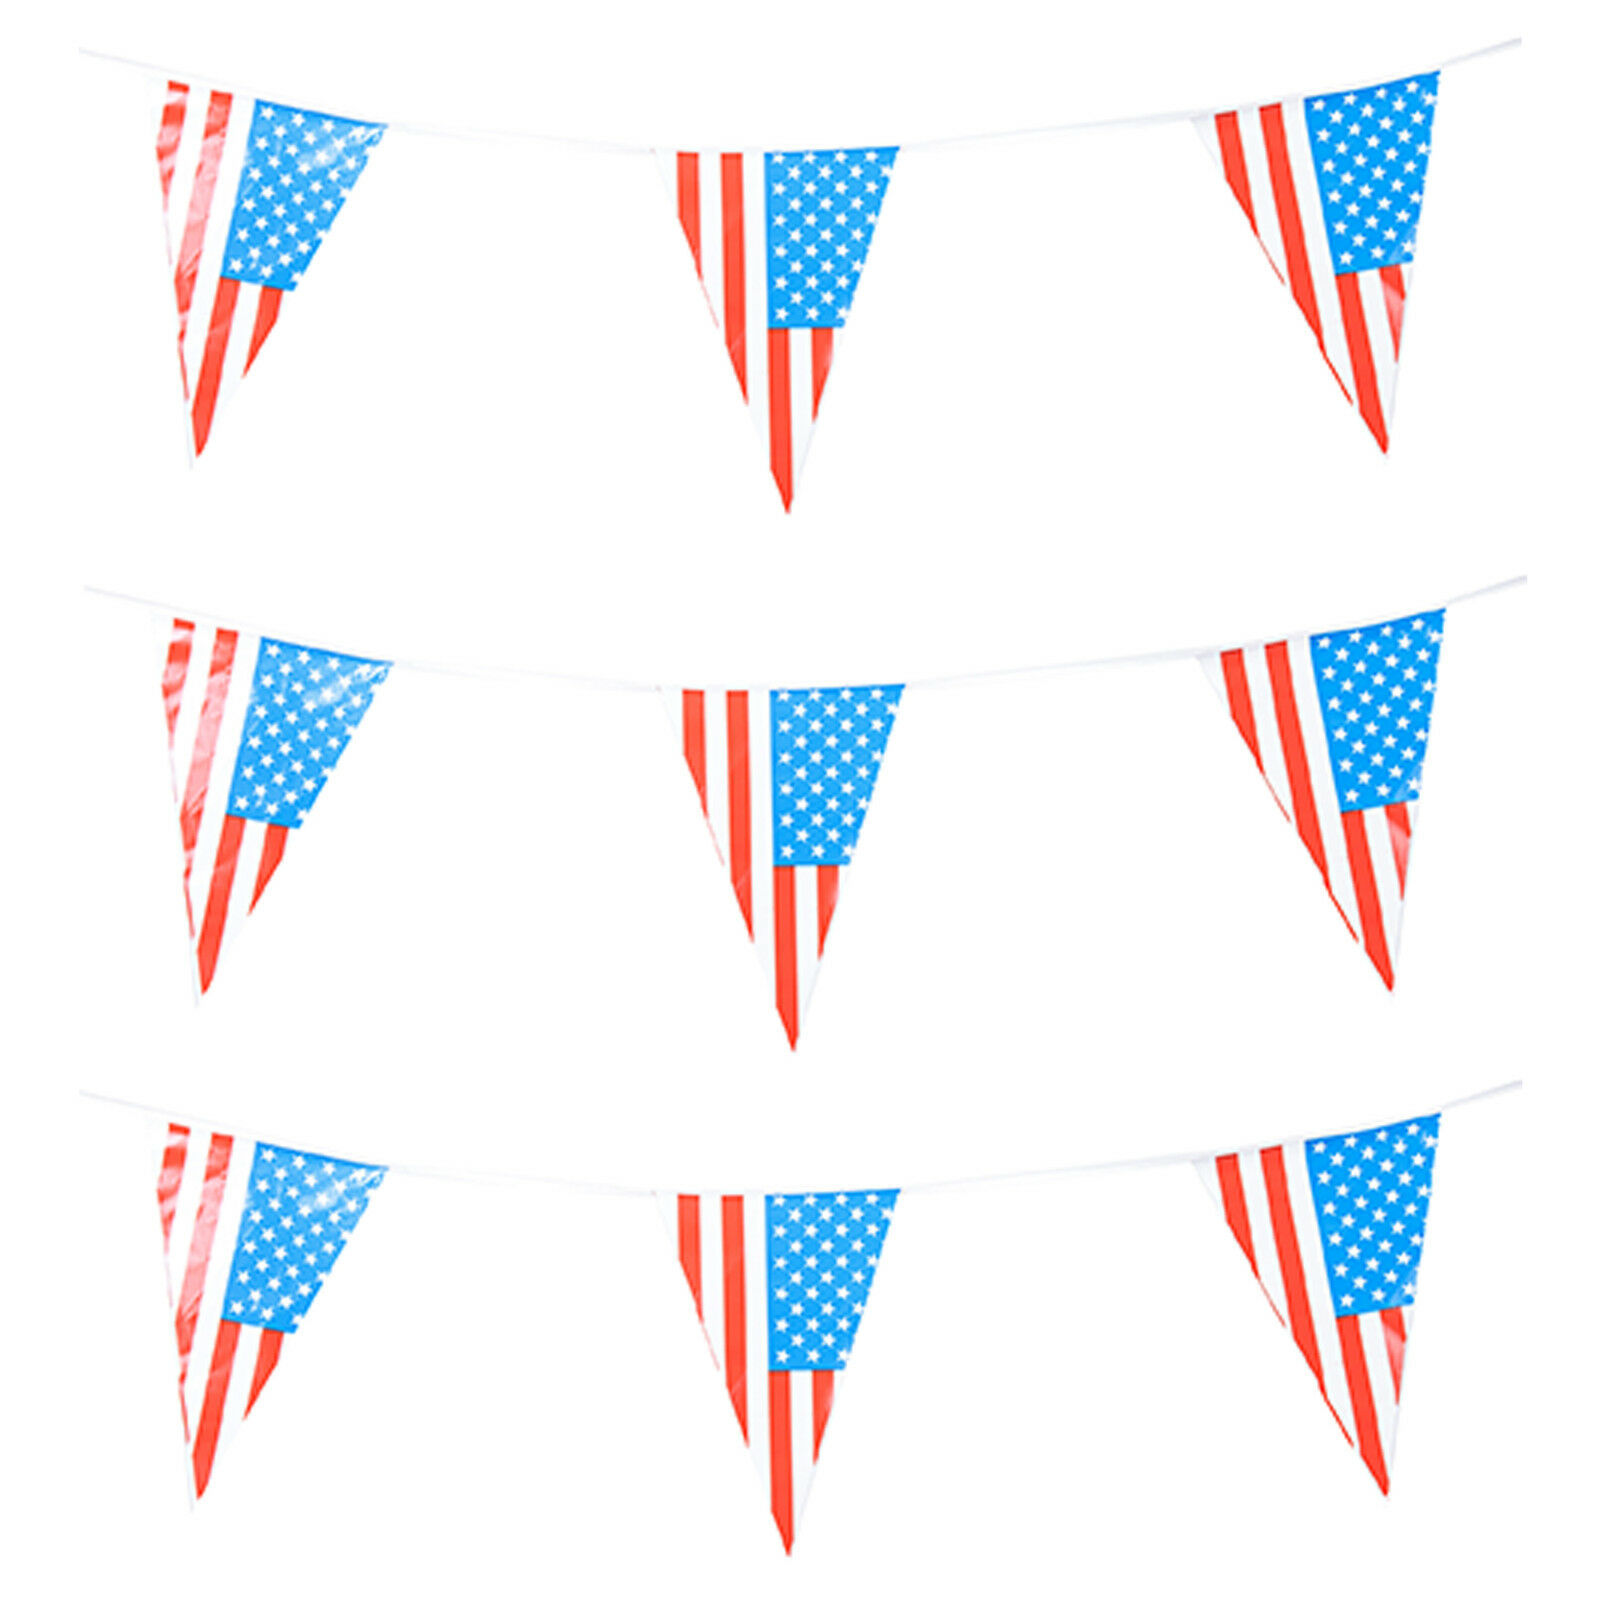 Usa american party bunting. différentes longueurs disponibles